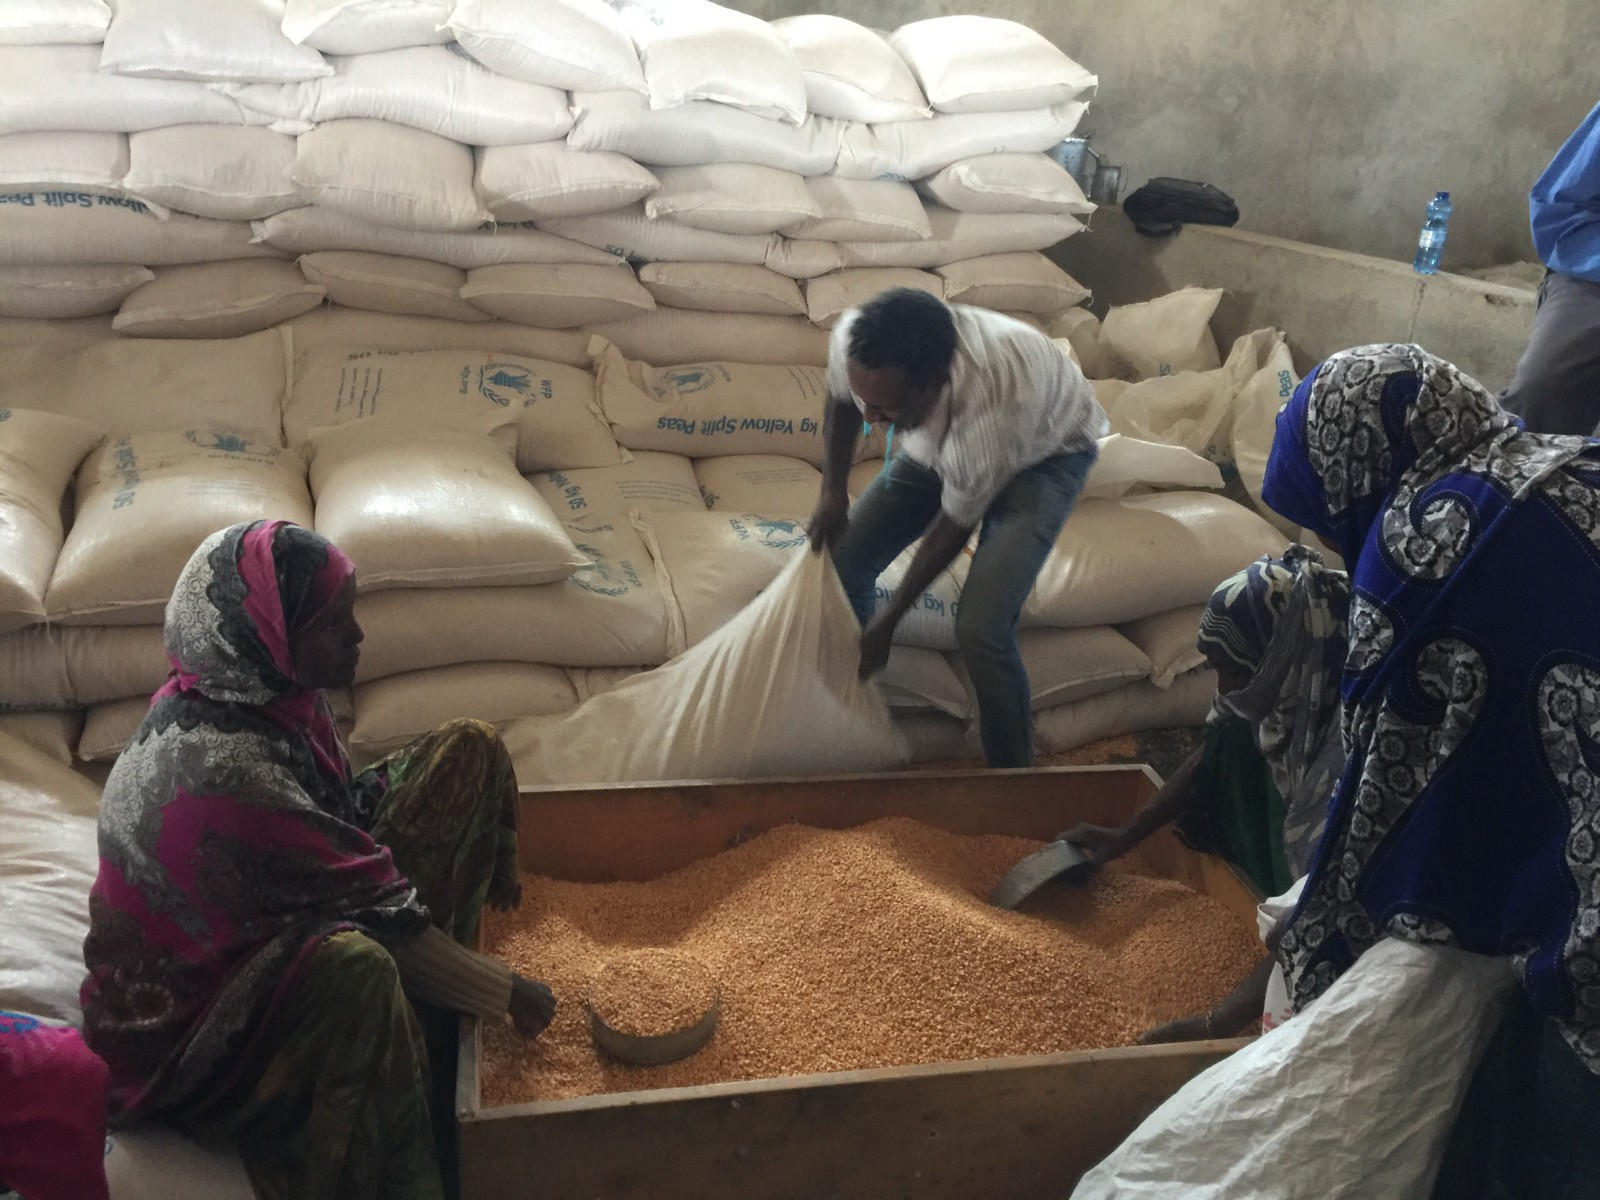 An African man and woman kneel next to a box of grain, behind them are large white bags of grain, one man is lifting a bag.